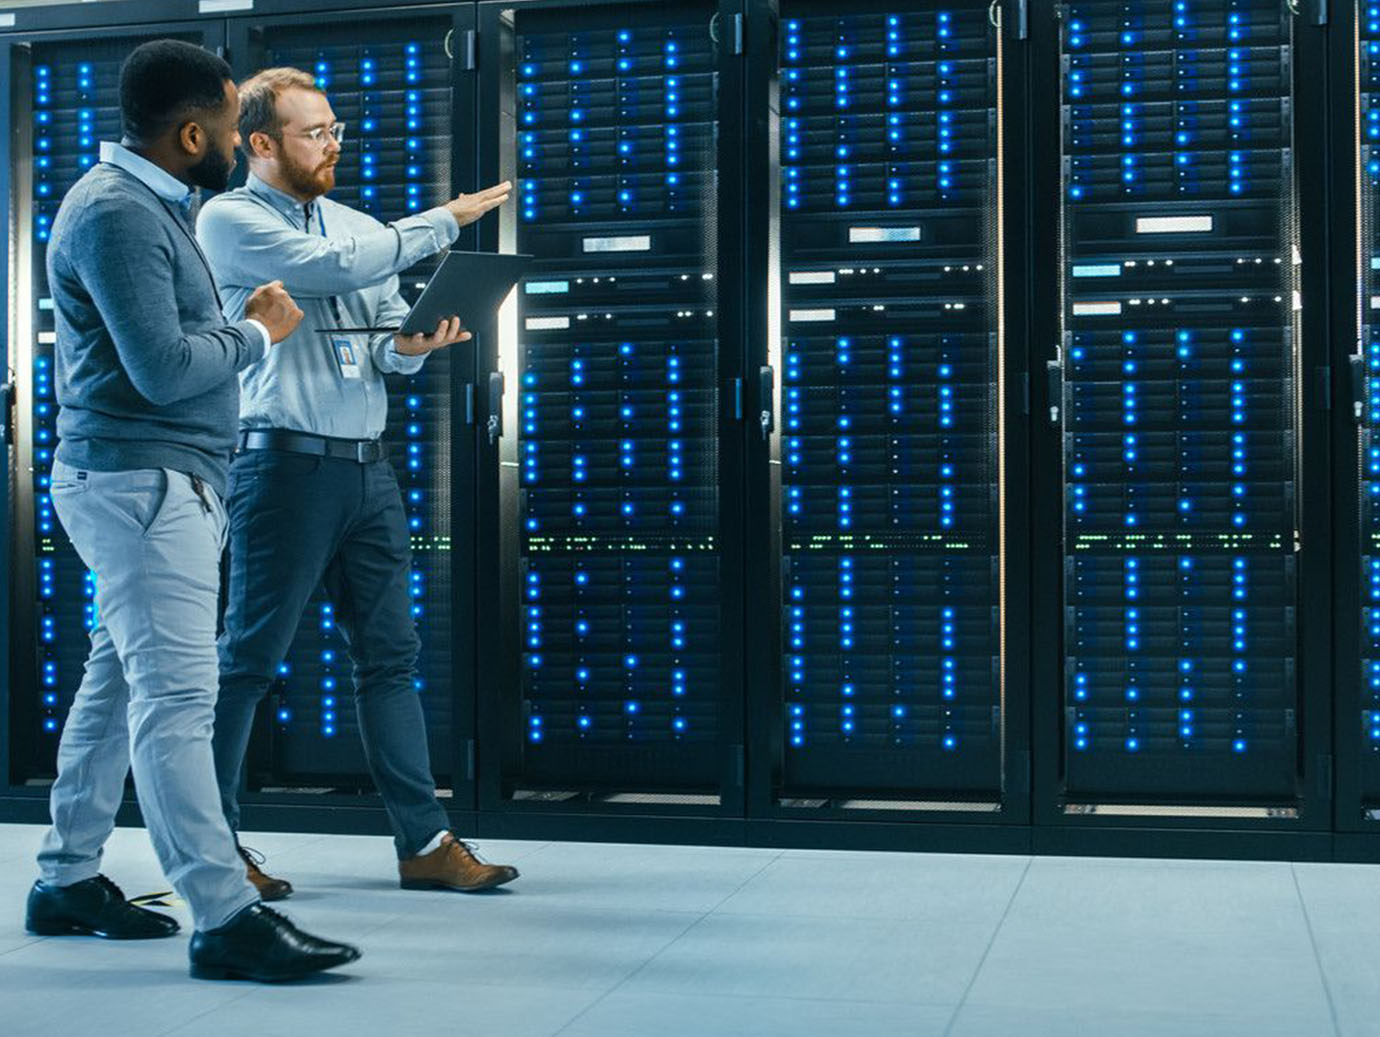 IT Technicians are Talking in Data Center